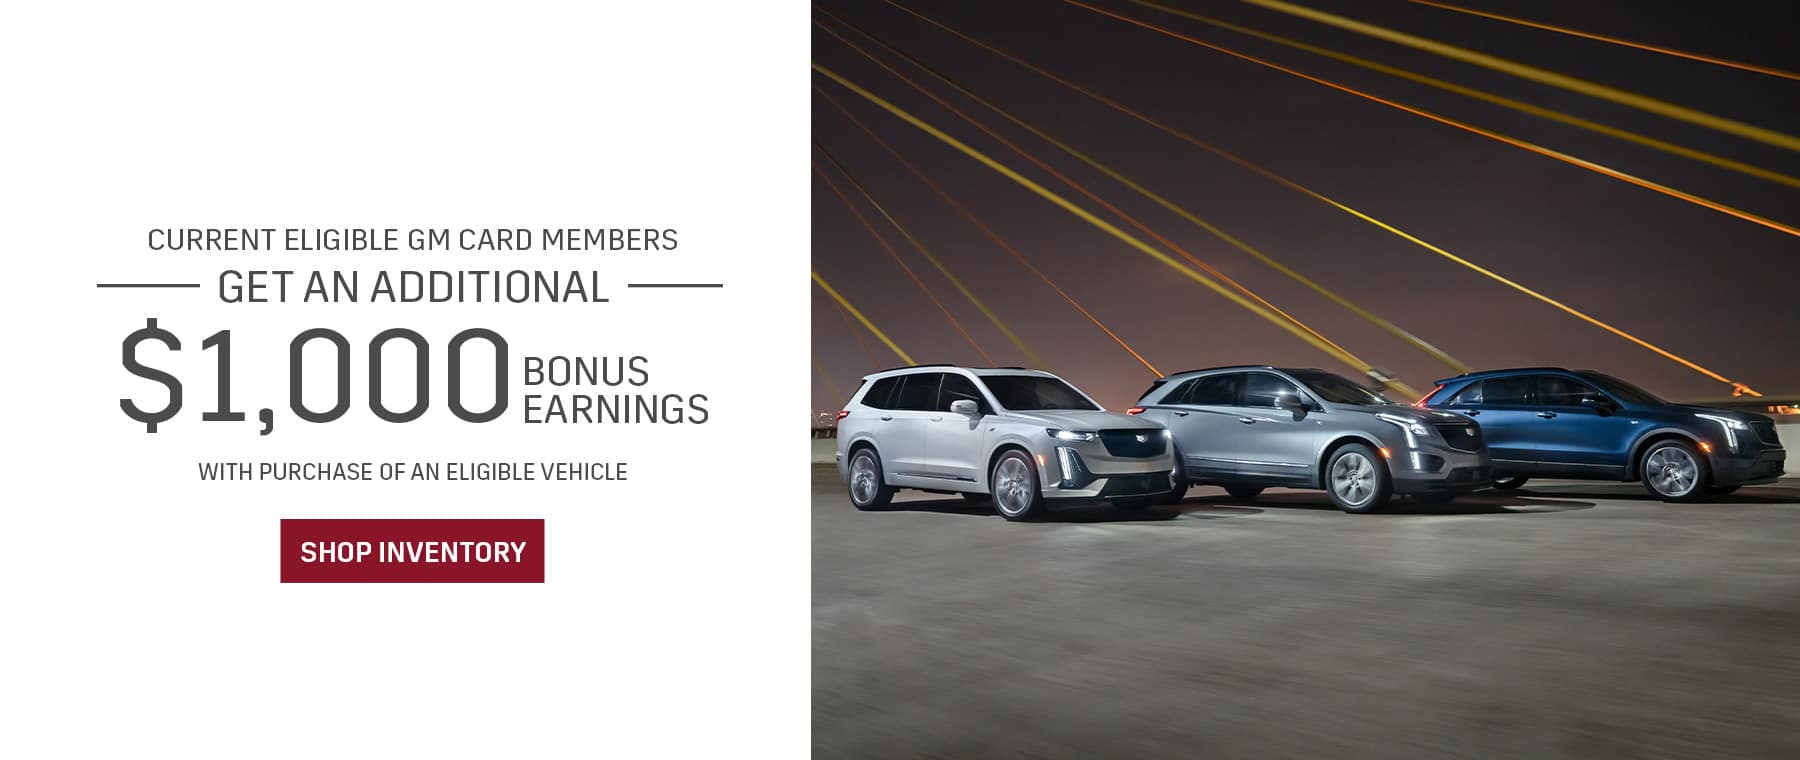 Current Eligible GM Card Members Get an Additional $1,000 Bonus Earnings with Purchase of an Eligible Vehicle